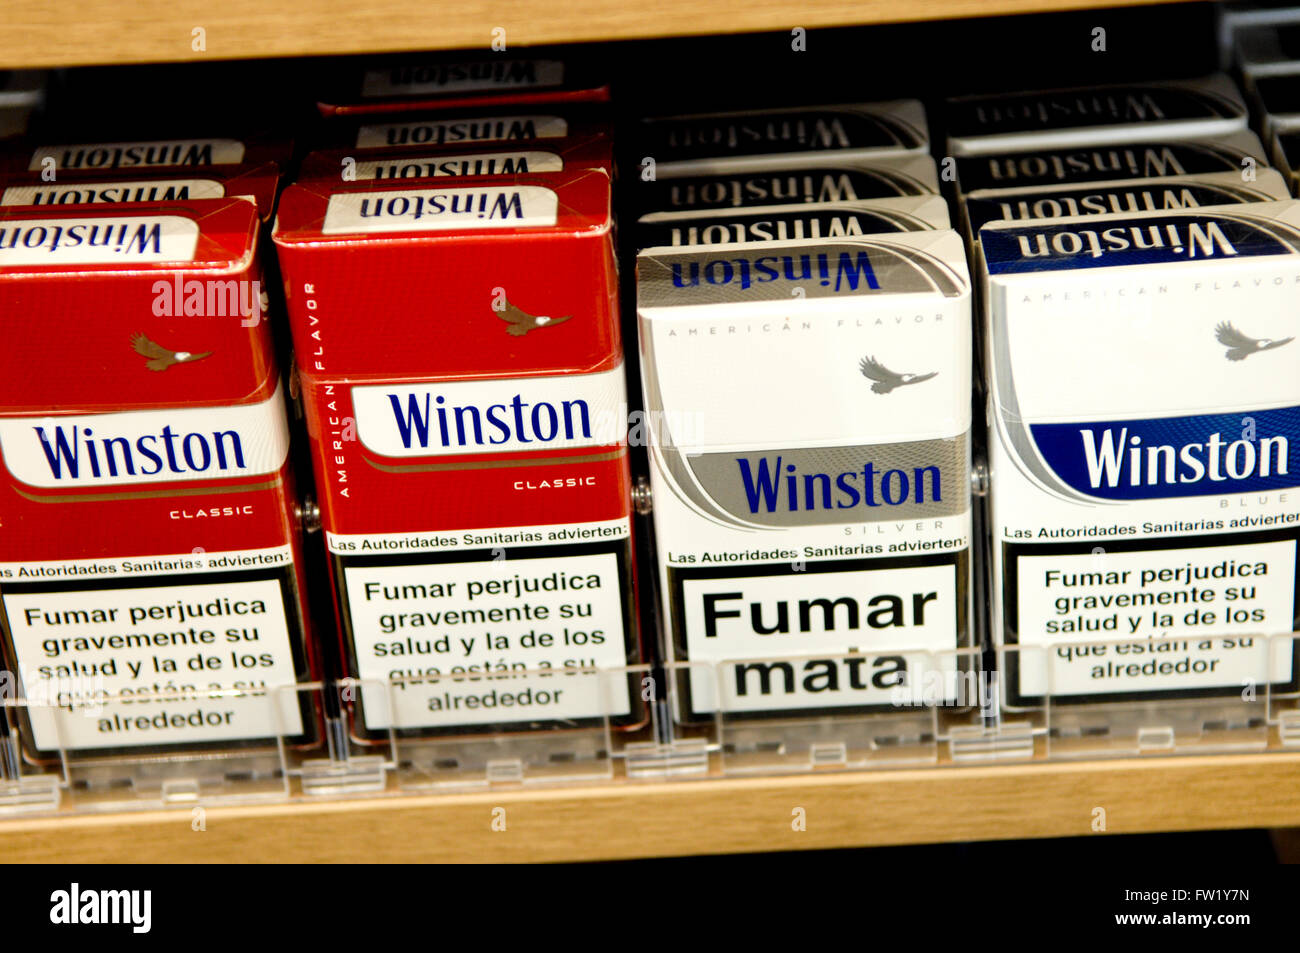 Best place to buy cigarettes Marlboro online